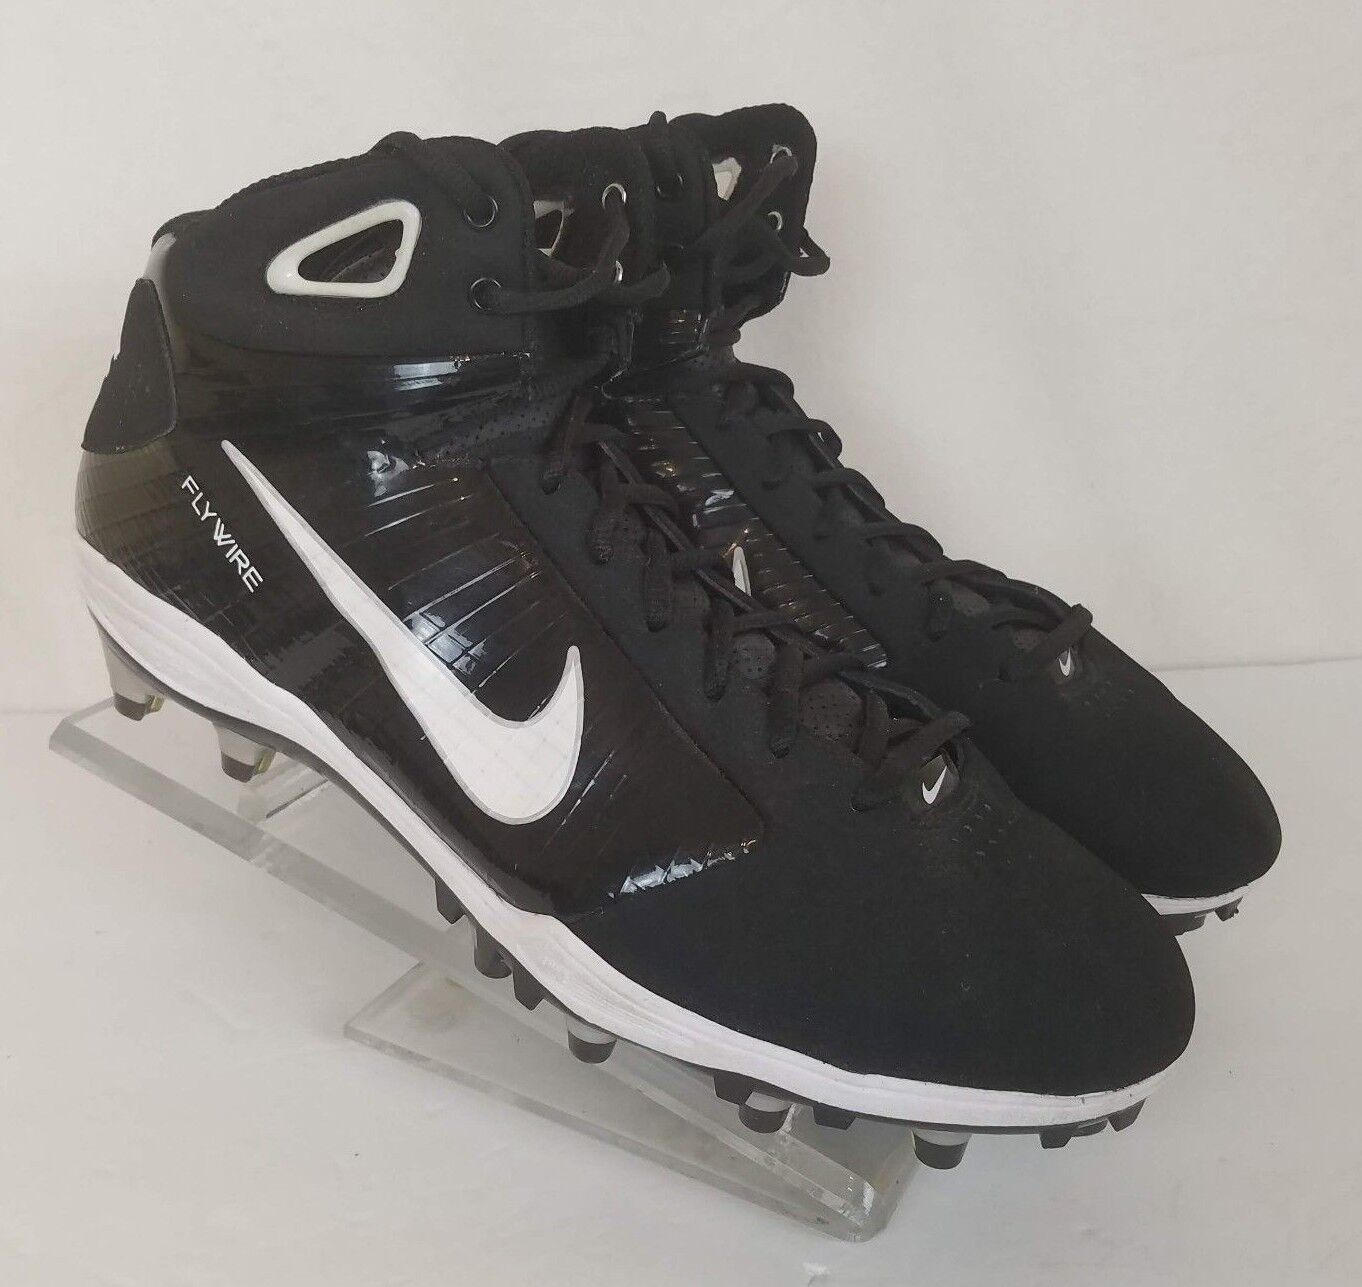 Nike Flywire Mens Cleats Black White Size 14.5 Football Lace Up Zoom Hyperfly